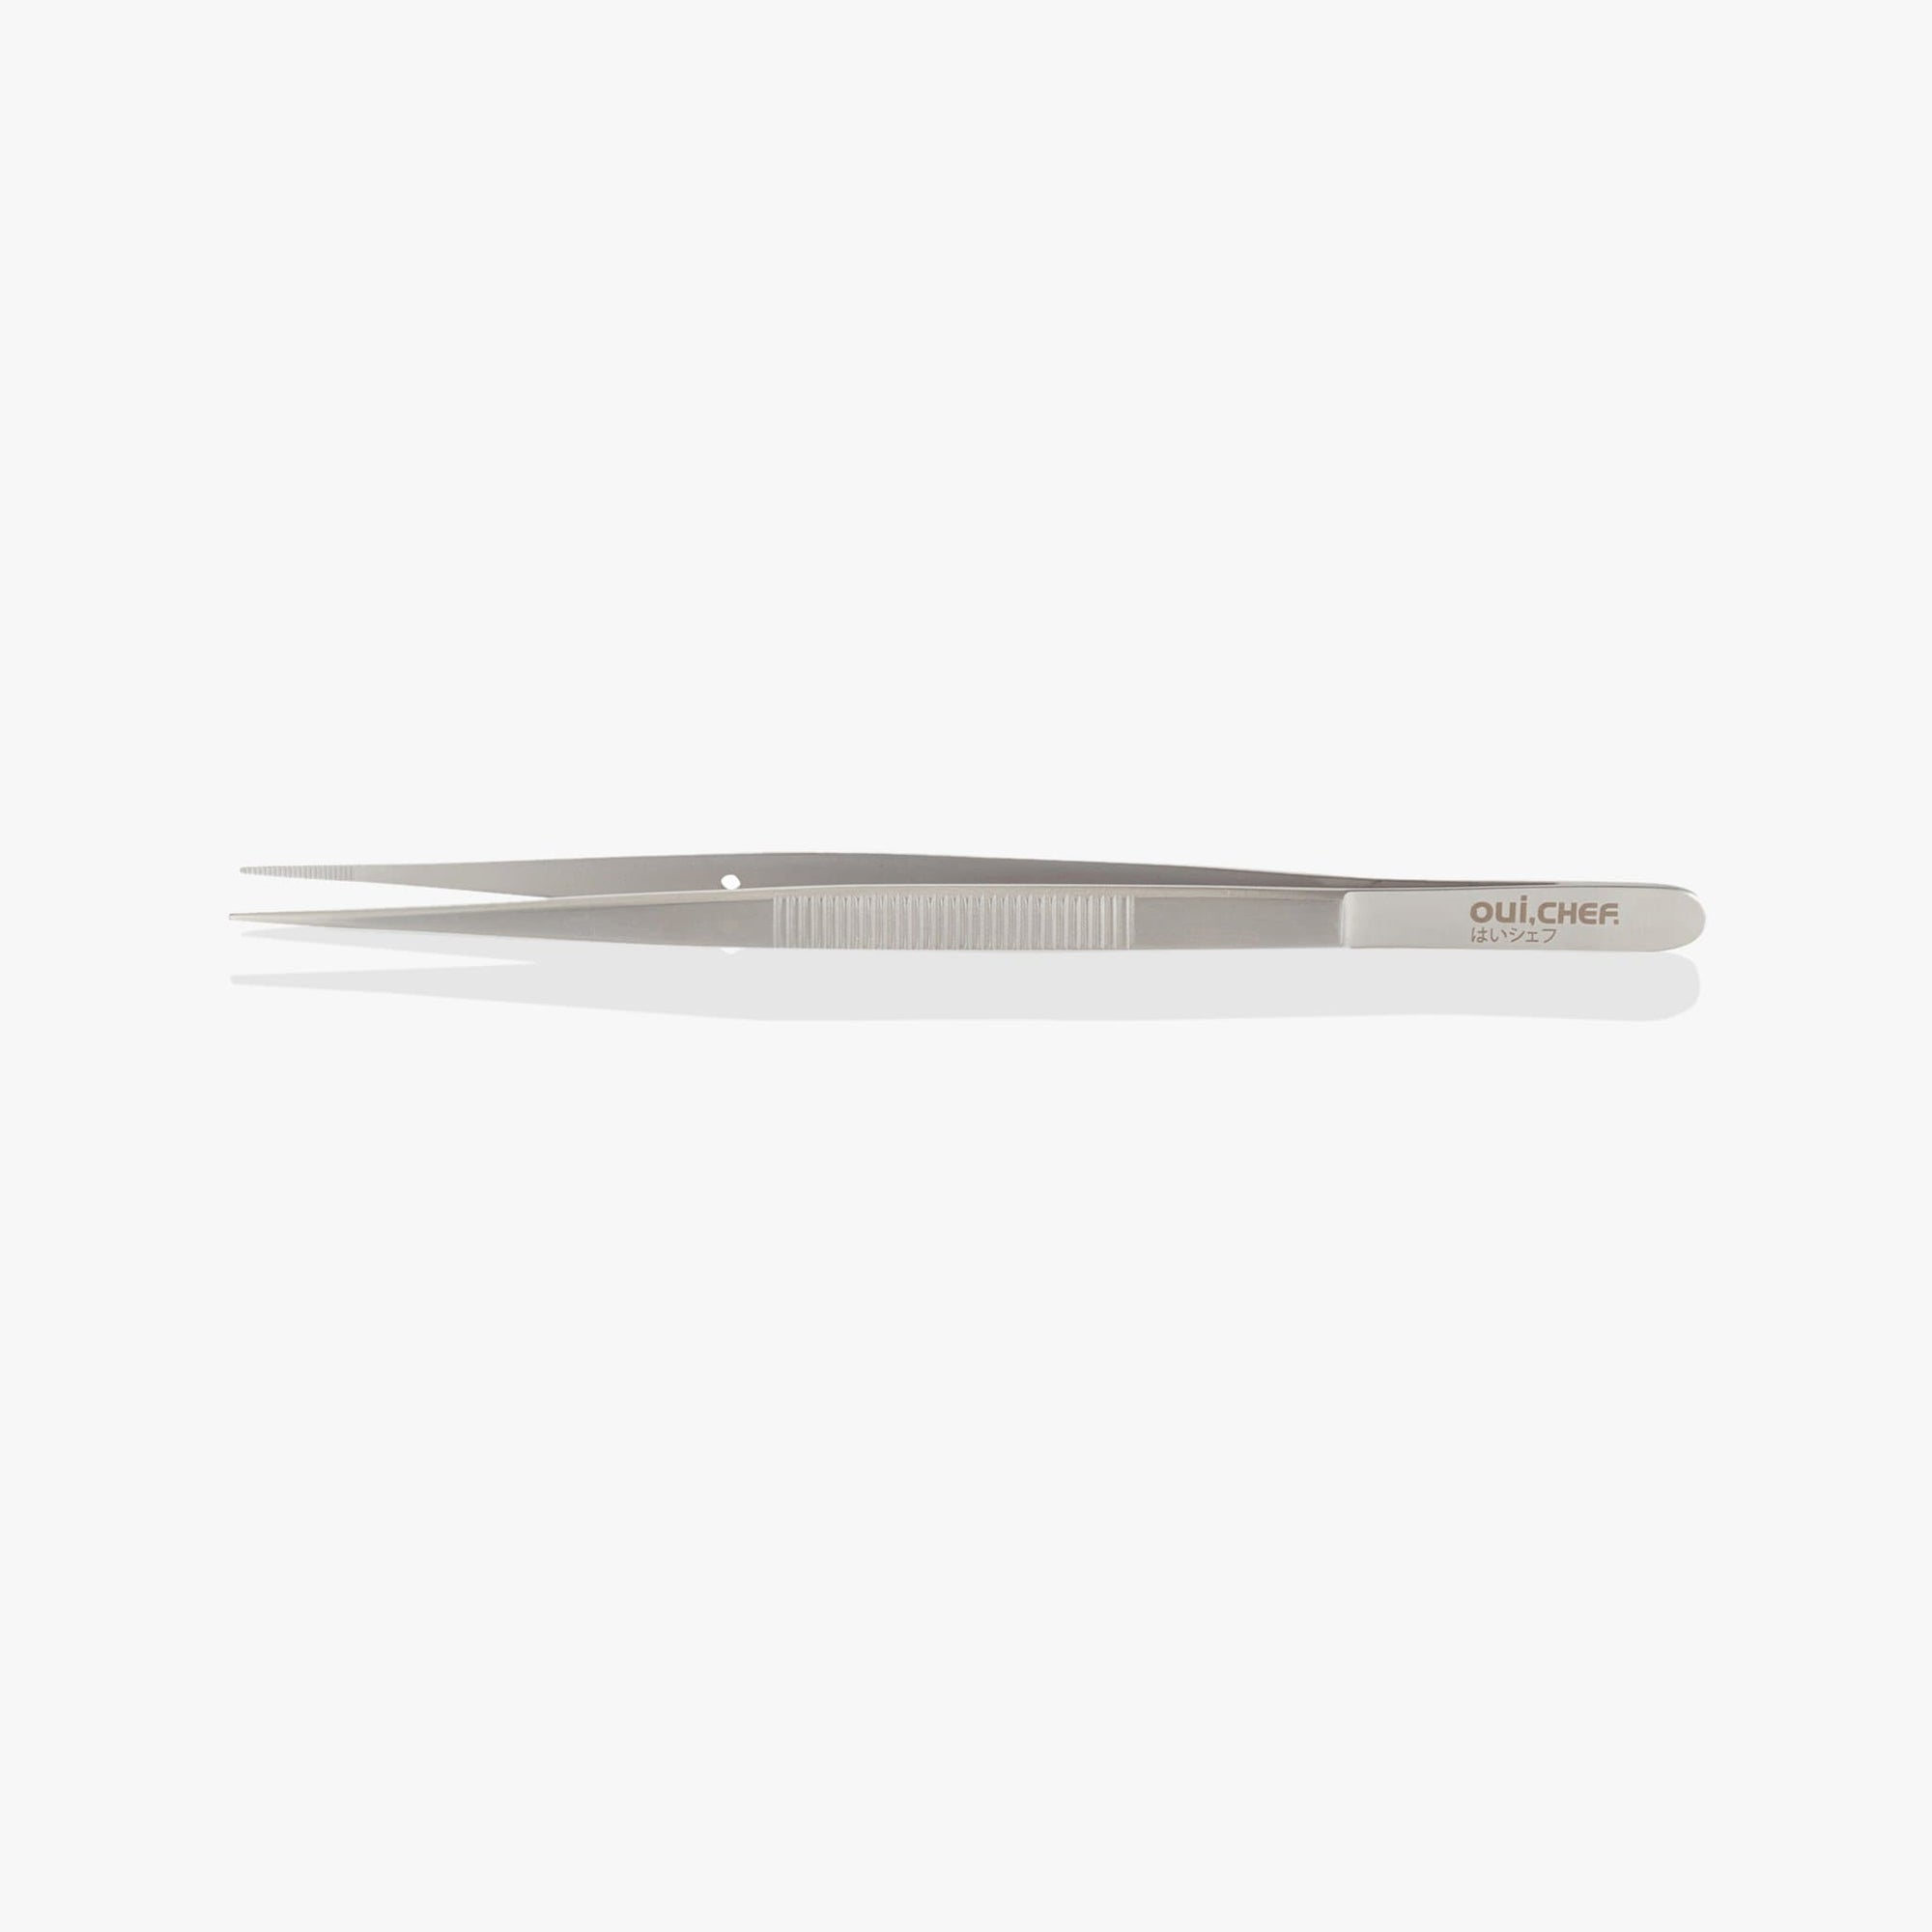 OUI CHEF Tweezers Superfine 15.5cm stainless Steel